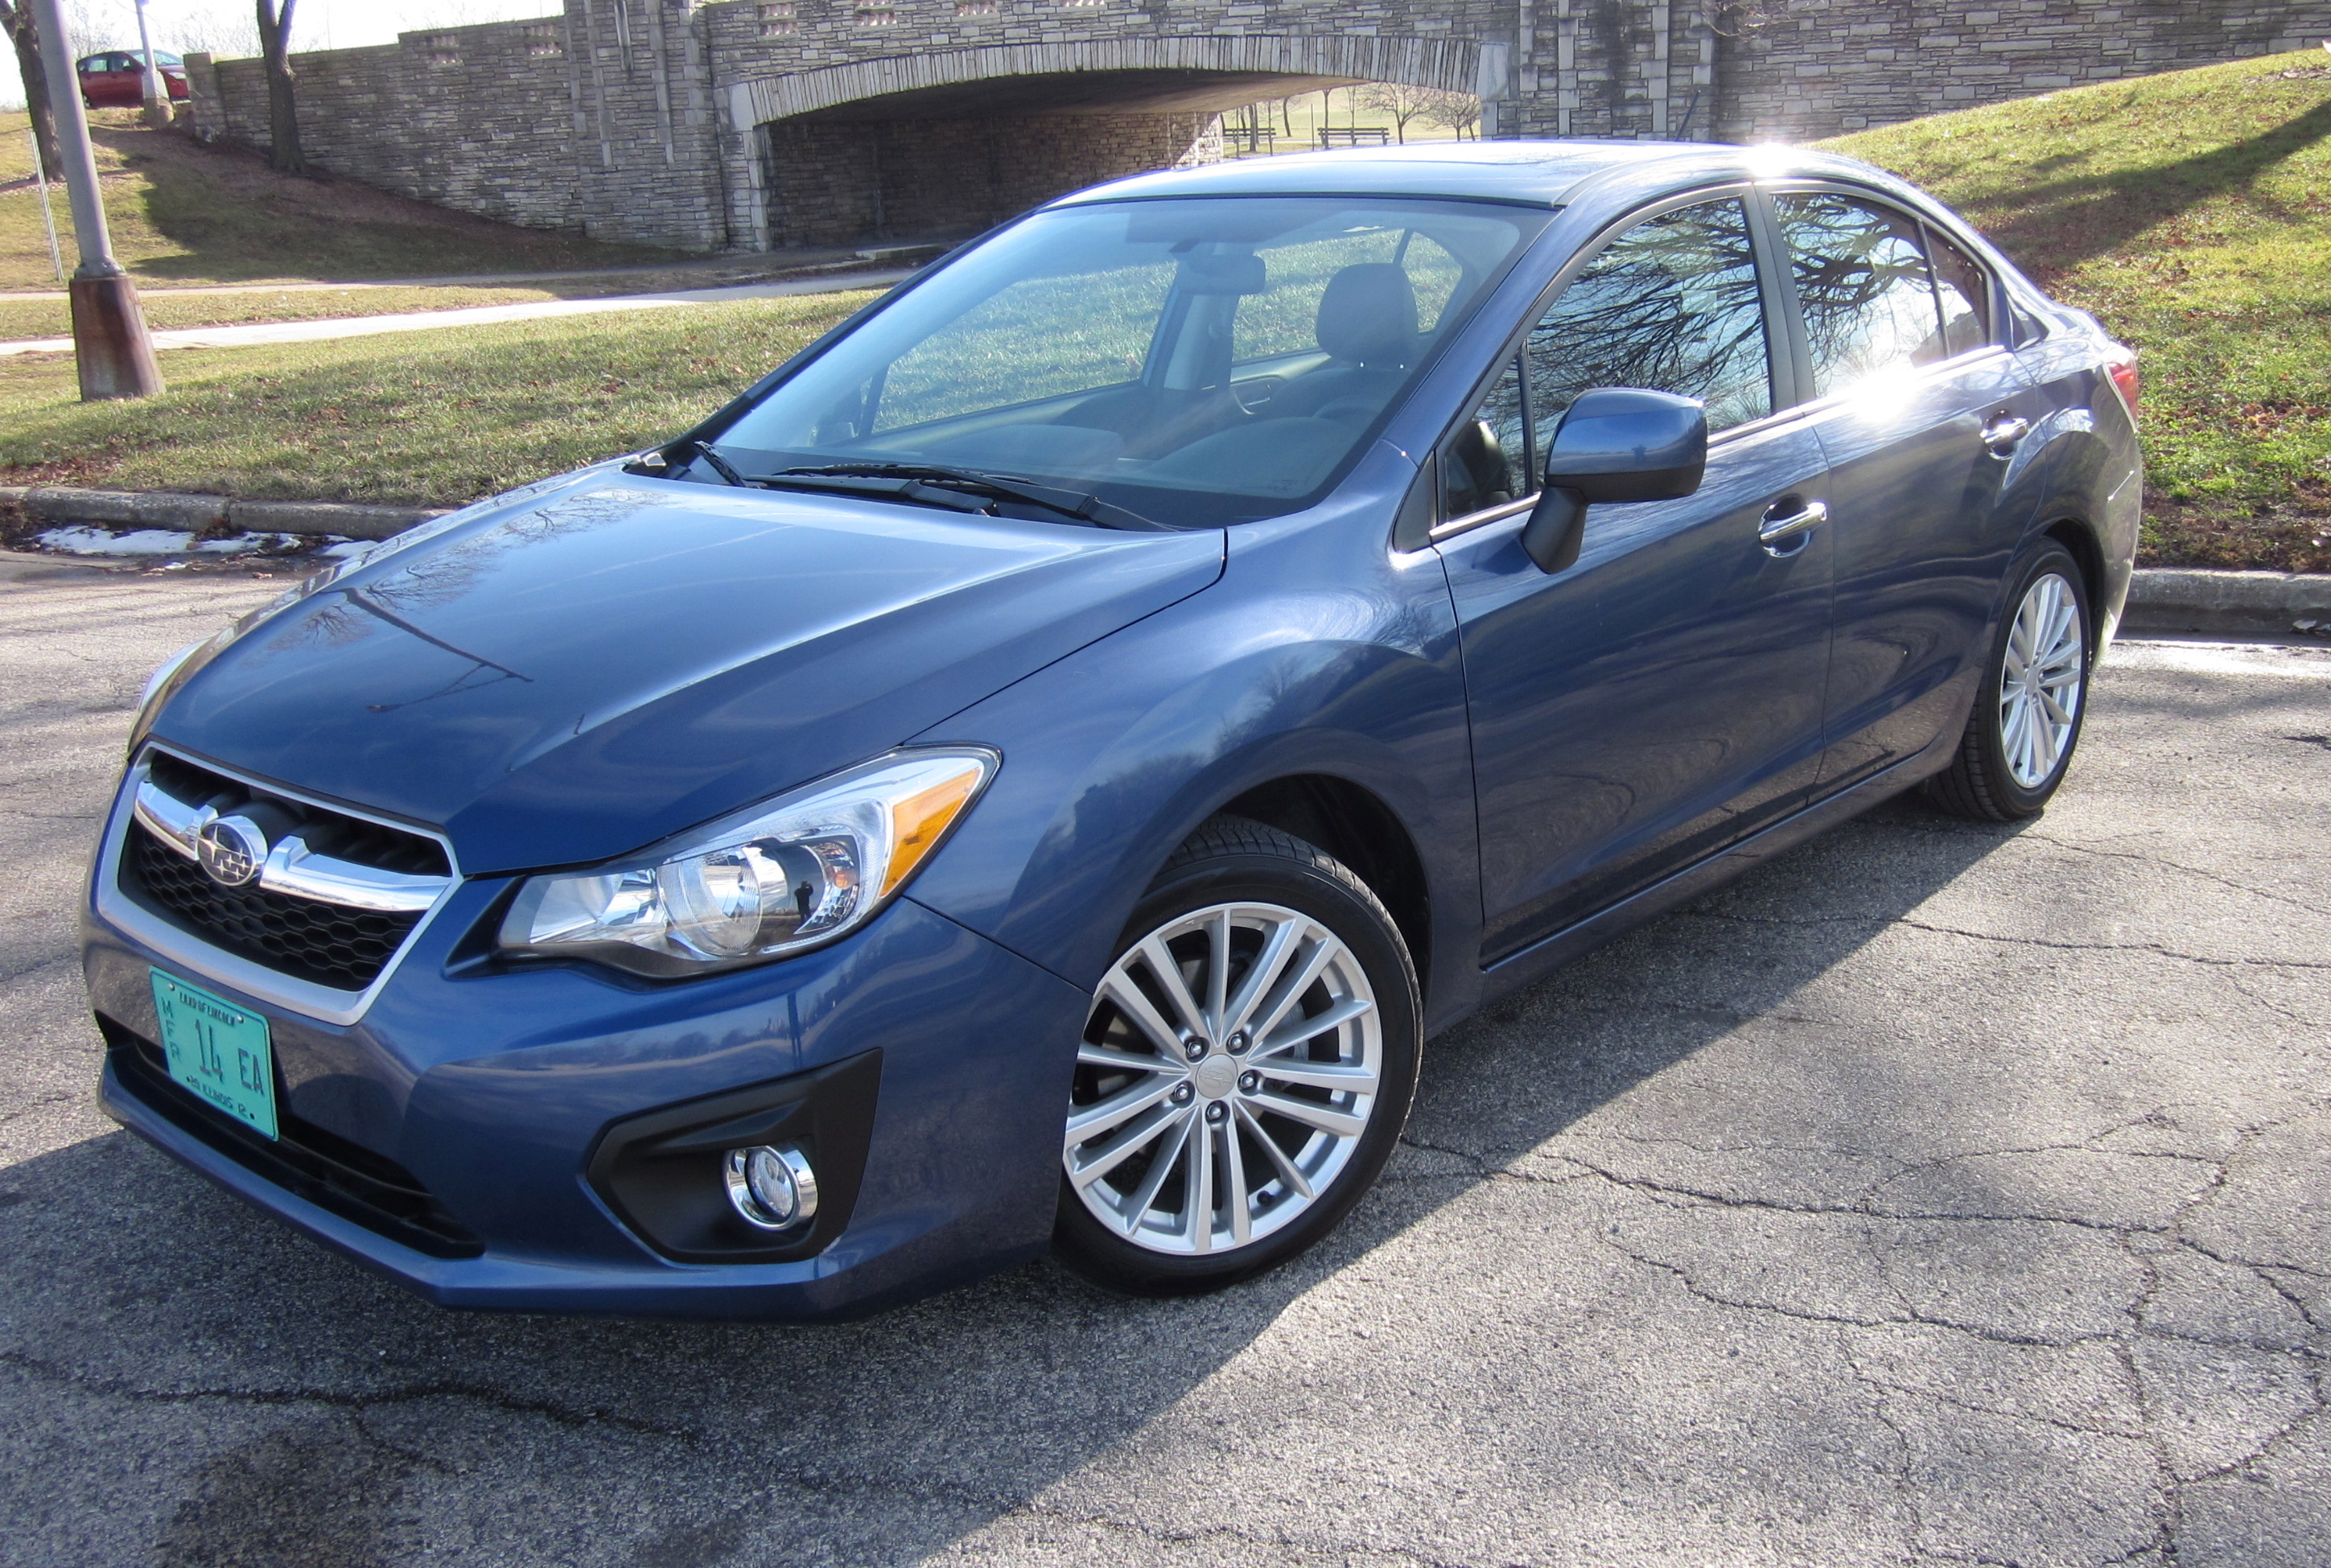 2012 Subaru Impreza 2 0i Limited Ride And Review By Larry